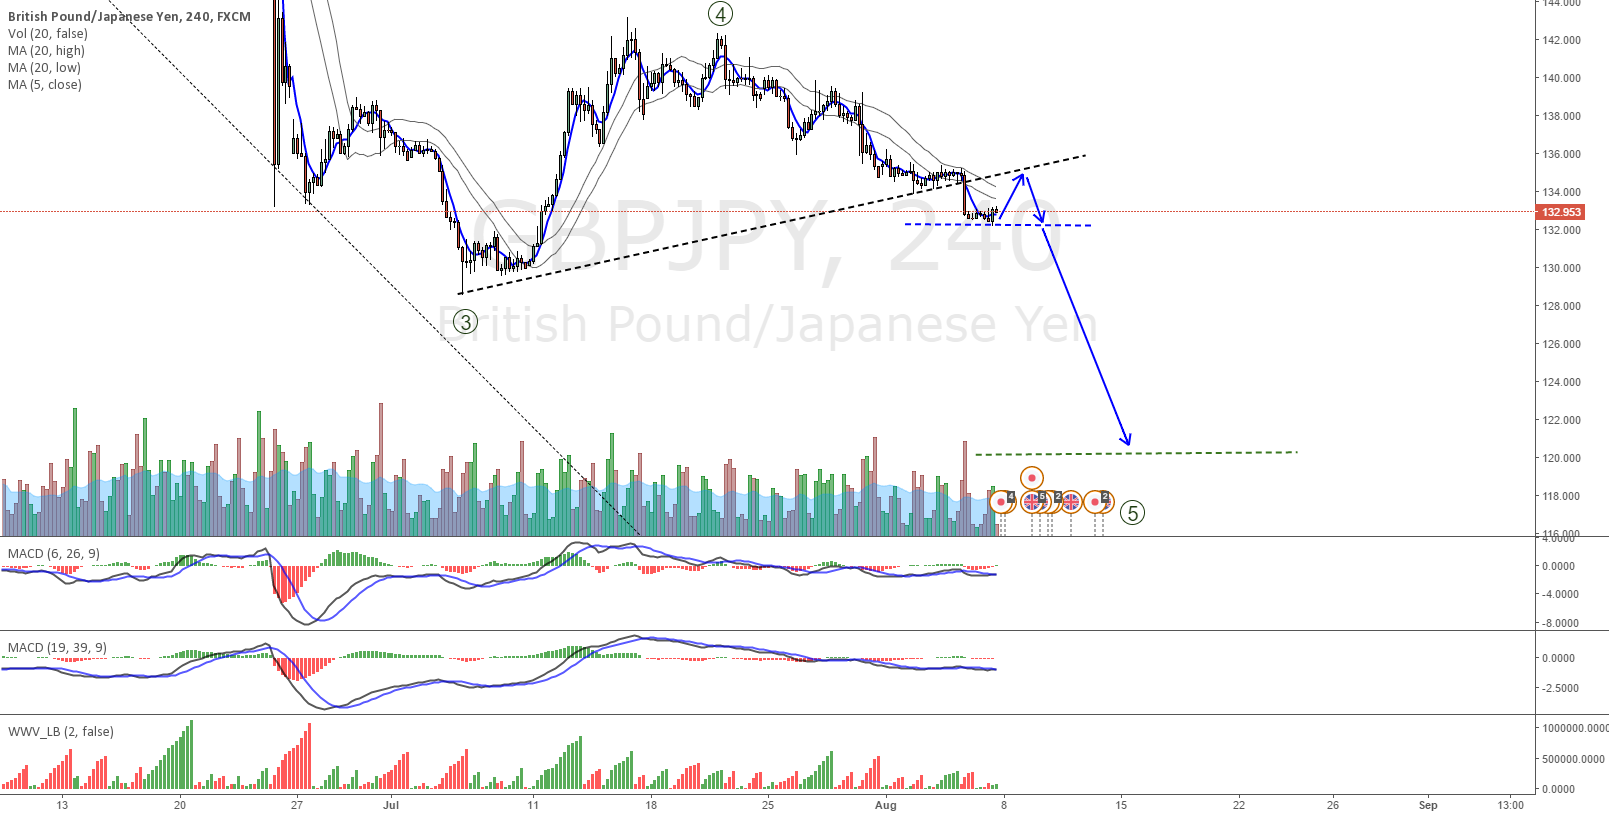 GBPJPY to continue down